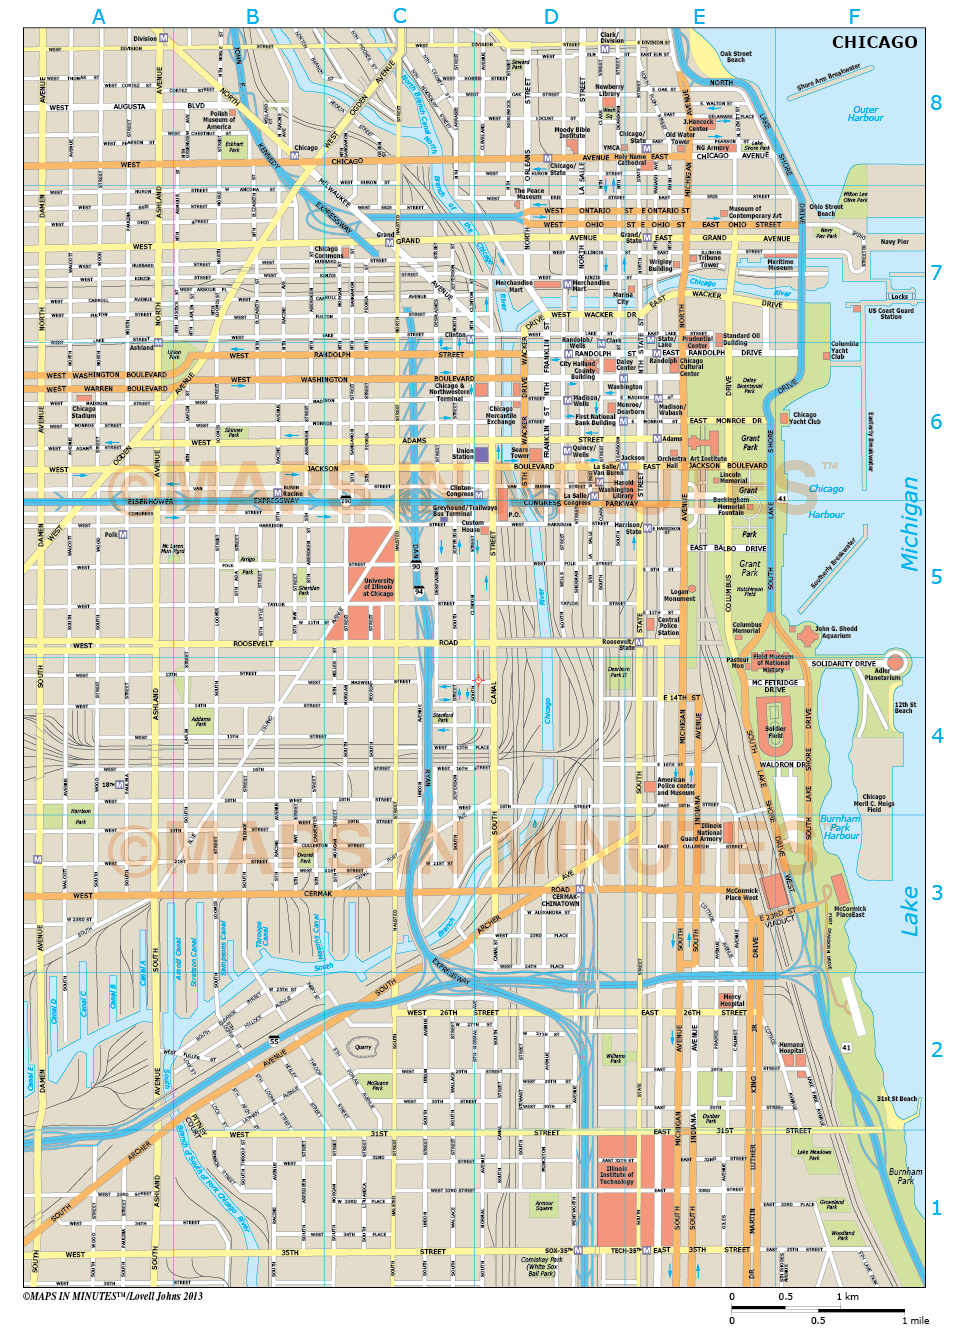 Chicago Map Pdf Downtown My Blog - Downtown chicago map pdf